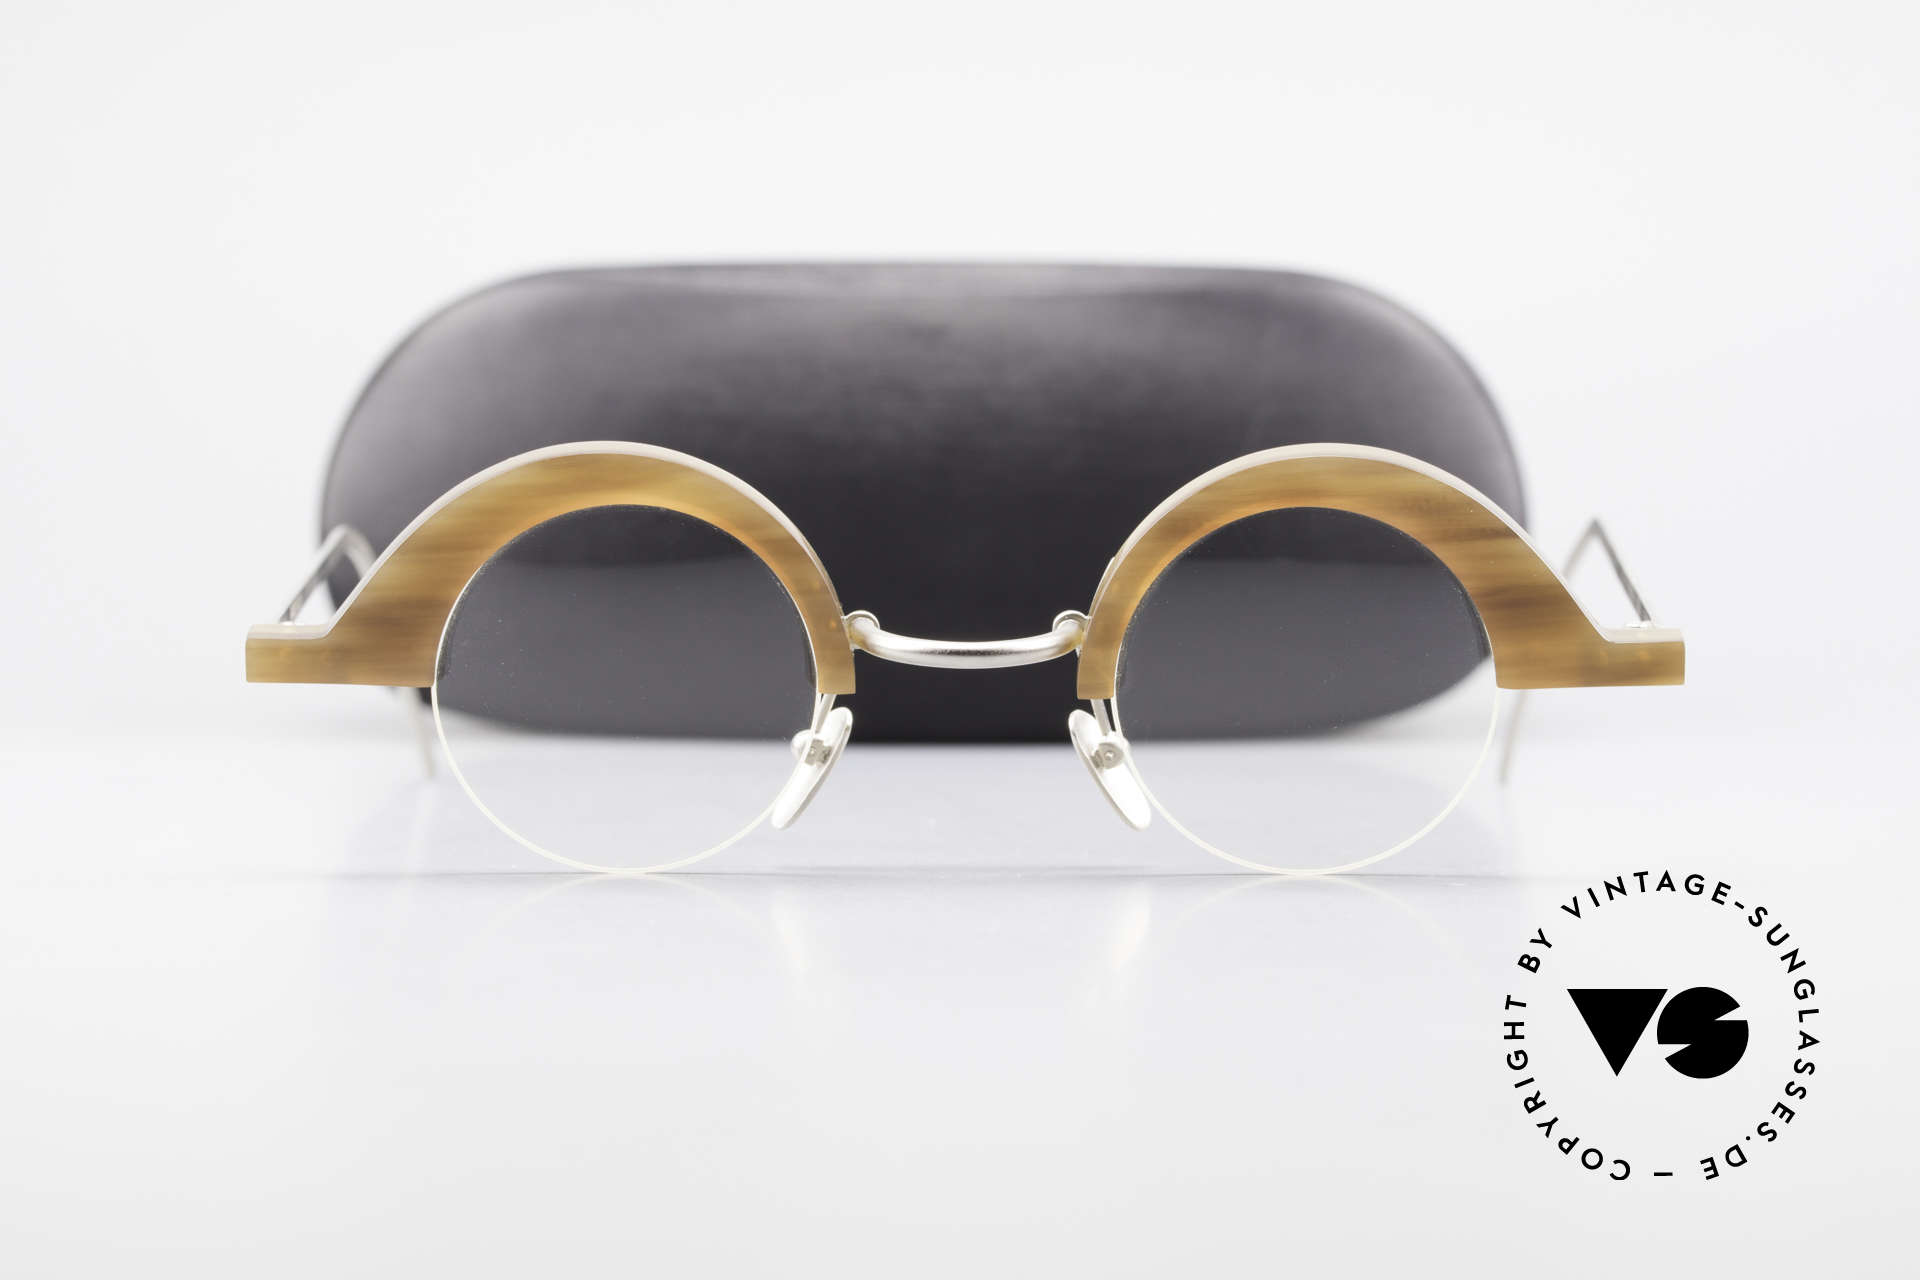 B. Angeletti Baal Redesign Genuine Horn Glasses 1994, Size: medium, Made for Men and Women